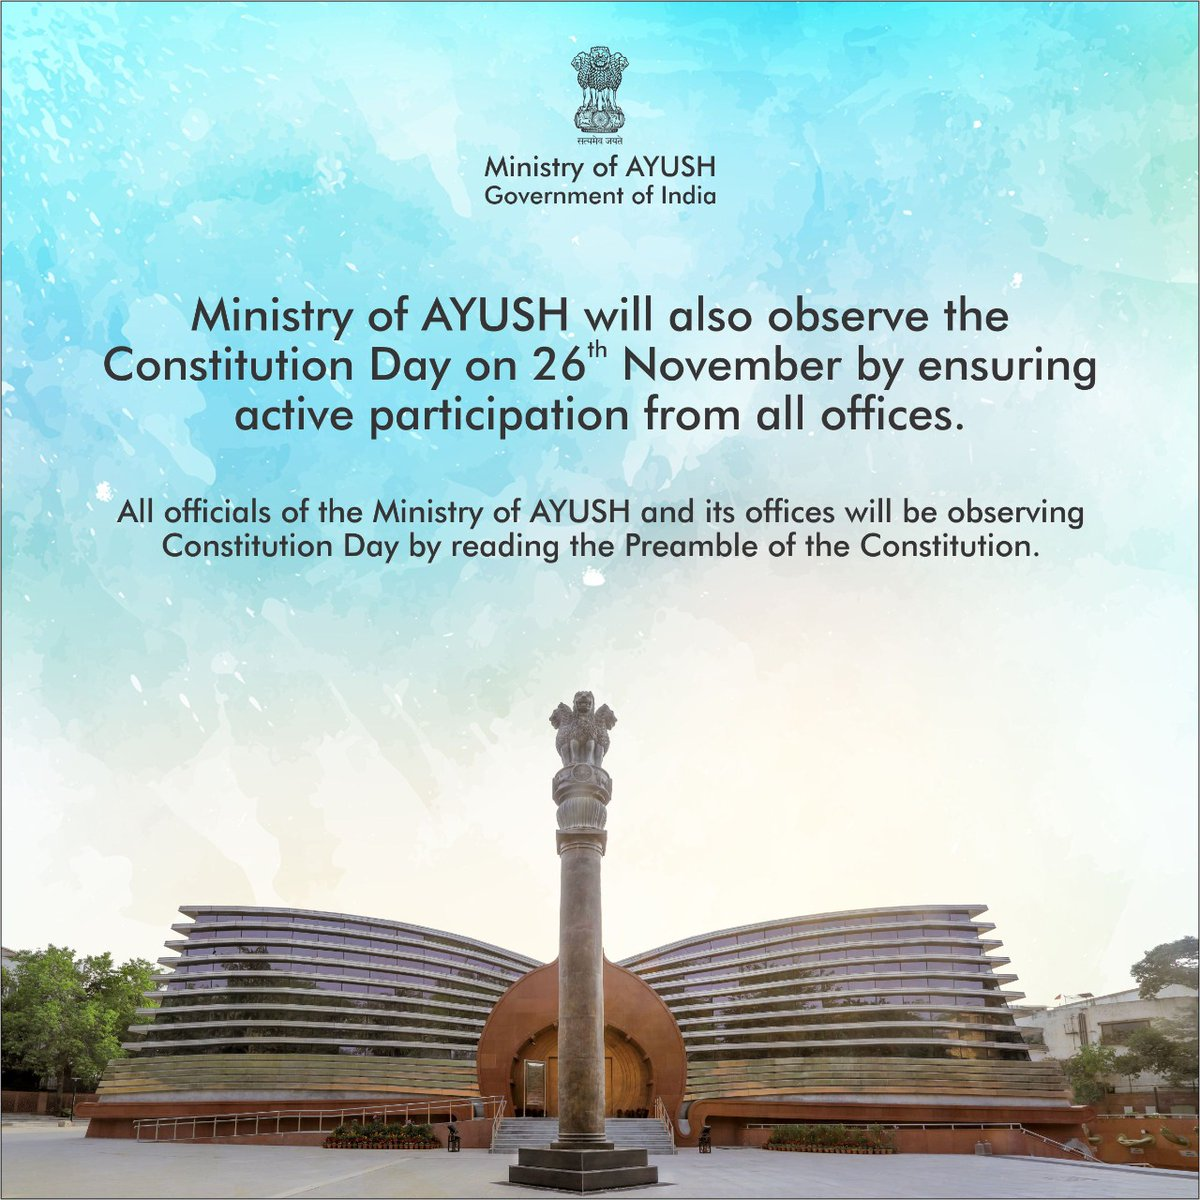 #ConstitutionDay, also known as 'Samvidhan Divas', is observed in our country on 26th  November every year to commemorate the adoption of the Constitution of #India.  Today on the occasion of Constitution Day, officials from Ministry of Ayush, its subordinate and autonomous